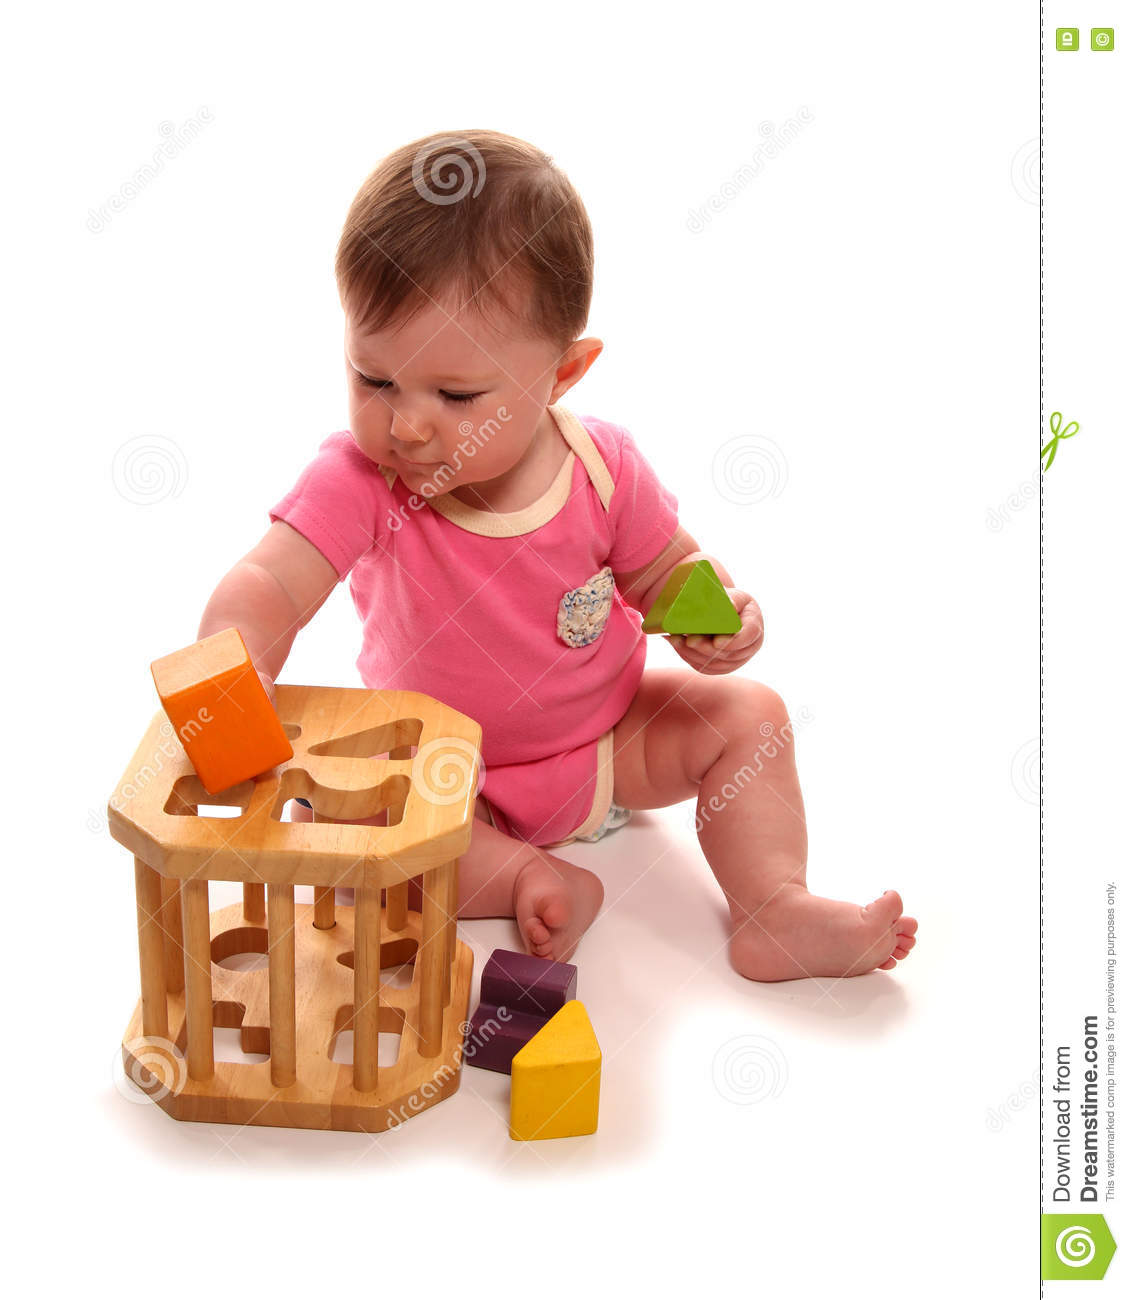 5a7ef4f83 Baby Girl Playing With Wooden Shape Sorter Stock Photo - Image of ...